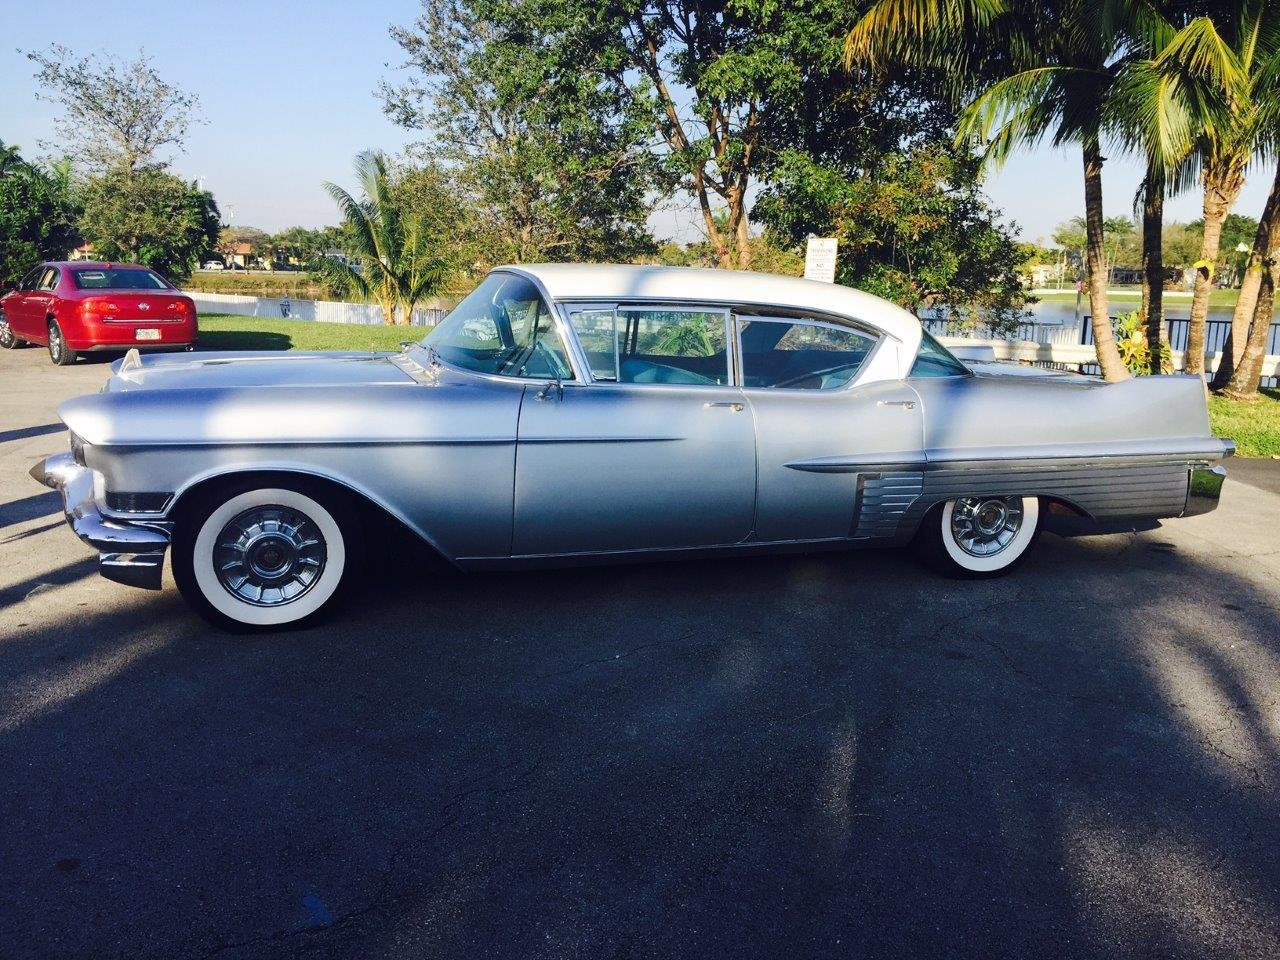 1957 Cadillac Fleetwood 60 Special 4DR HT For Sale (picture 1 of 6)